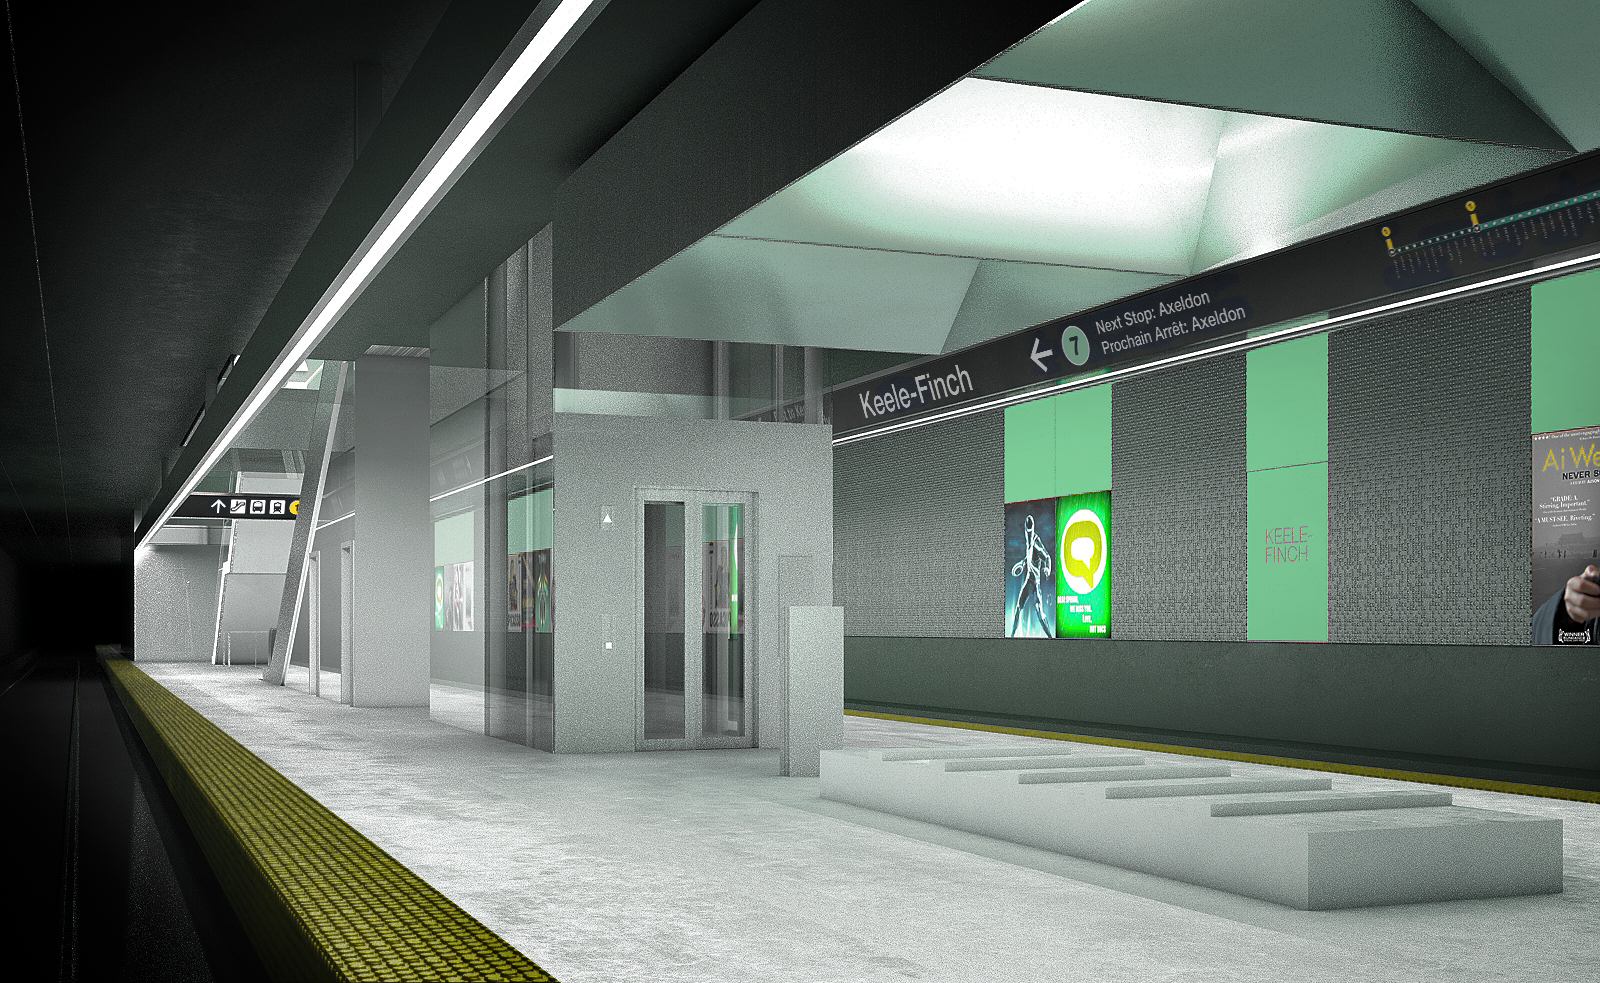 Finch West LRT DX - Station Platform